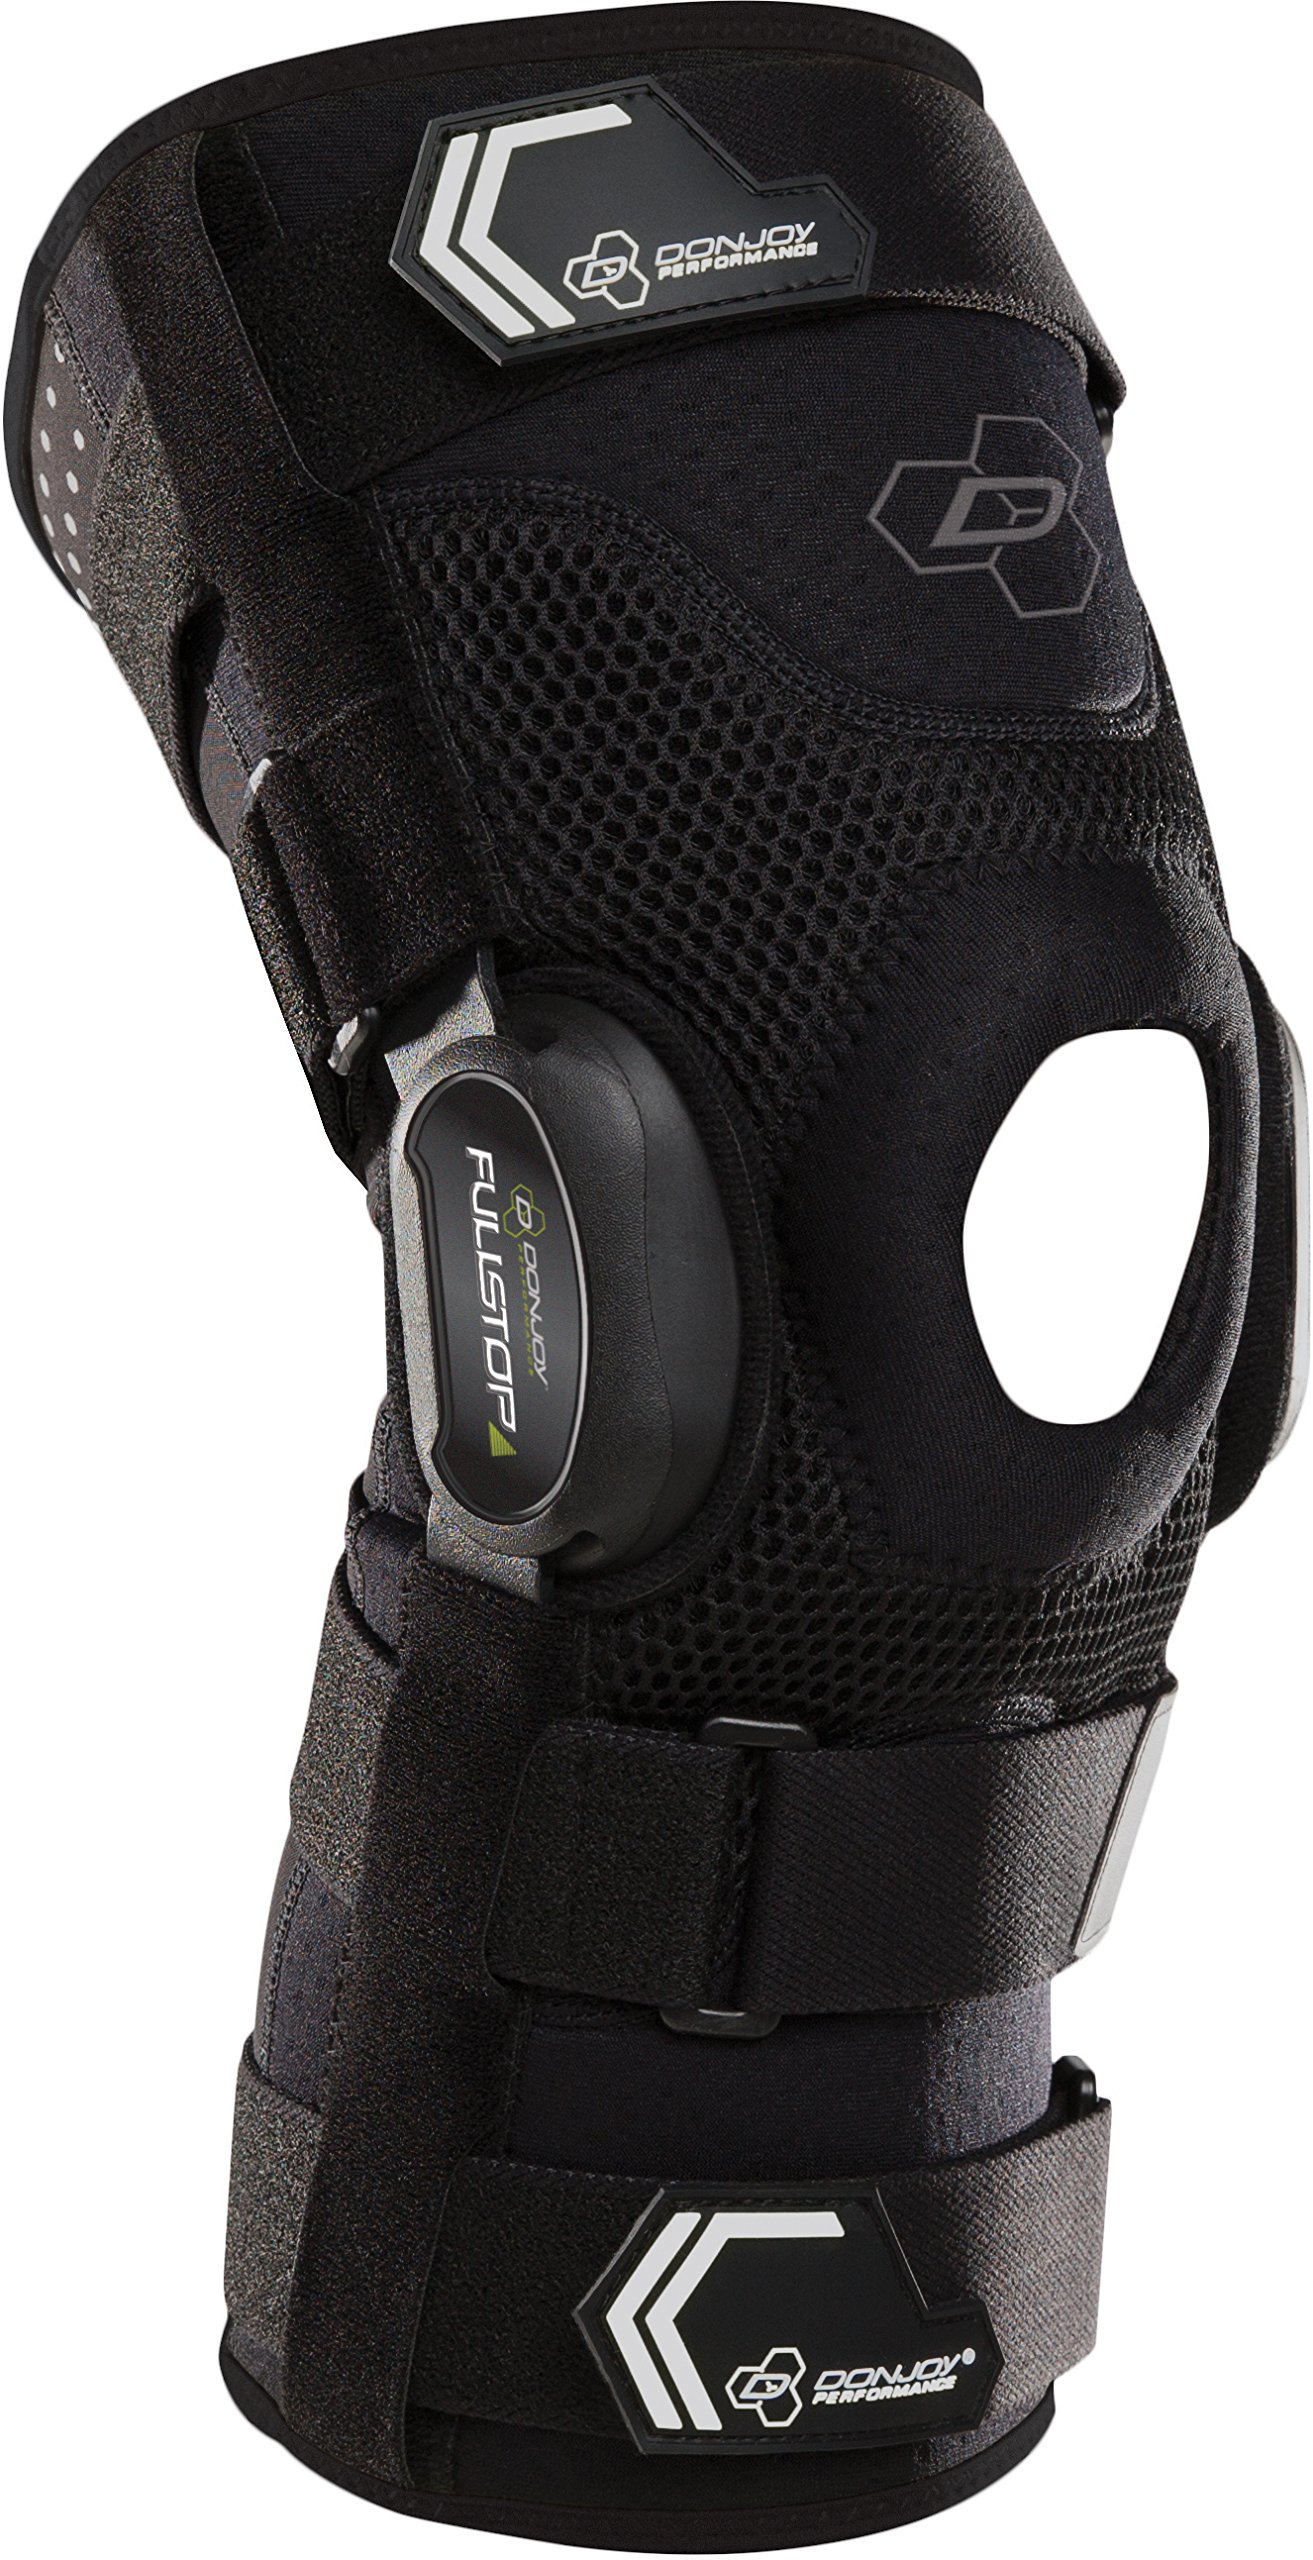 DonJoy Performance BIONIC FULLSTOP ACL Knee Brace, Large by DonJoy Performance